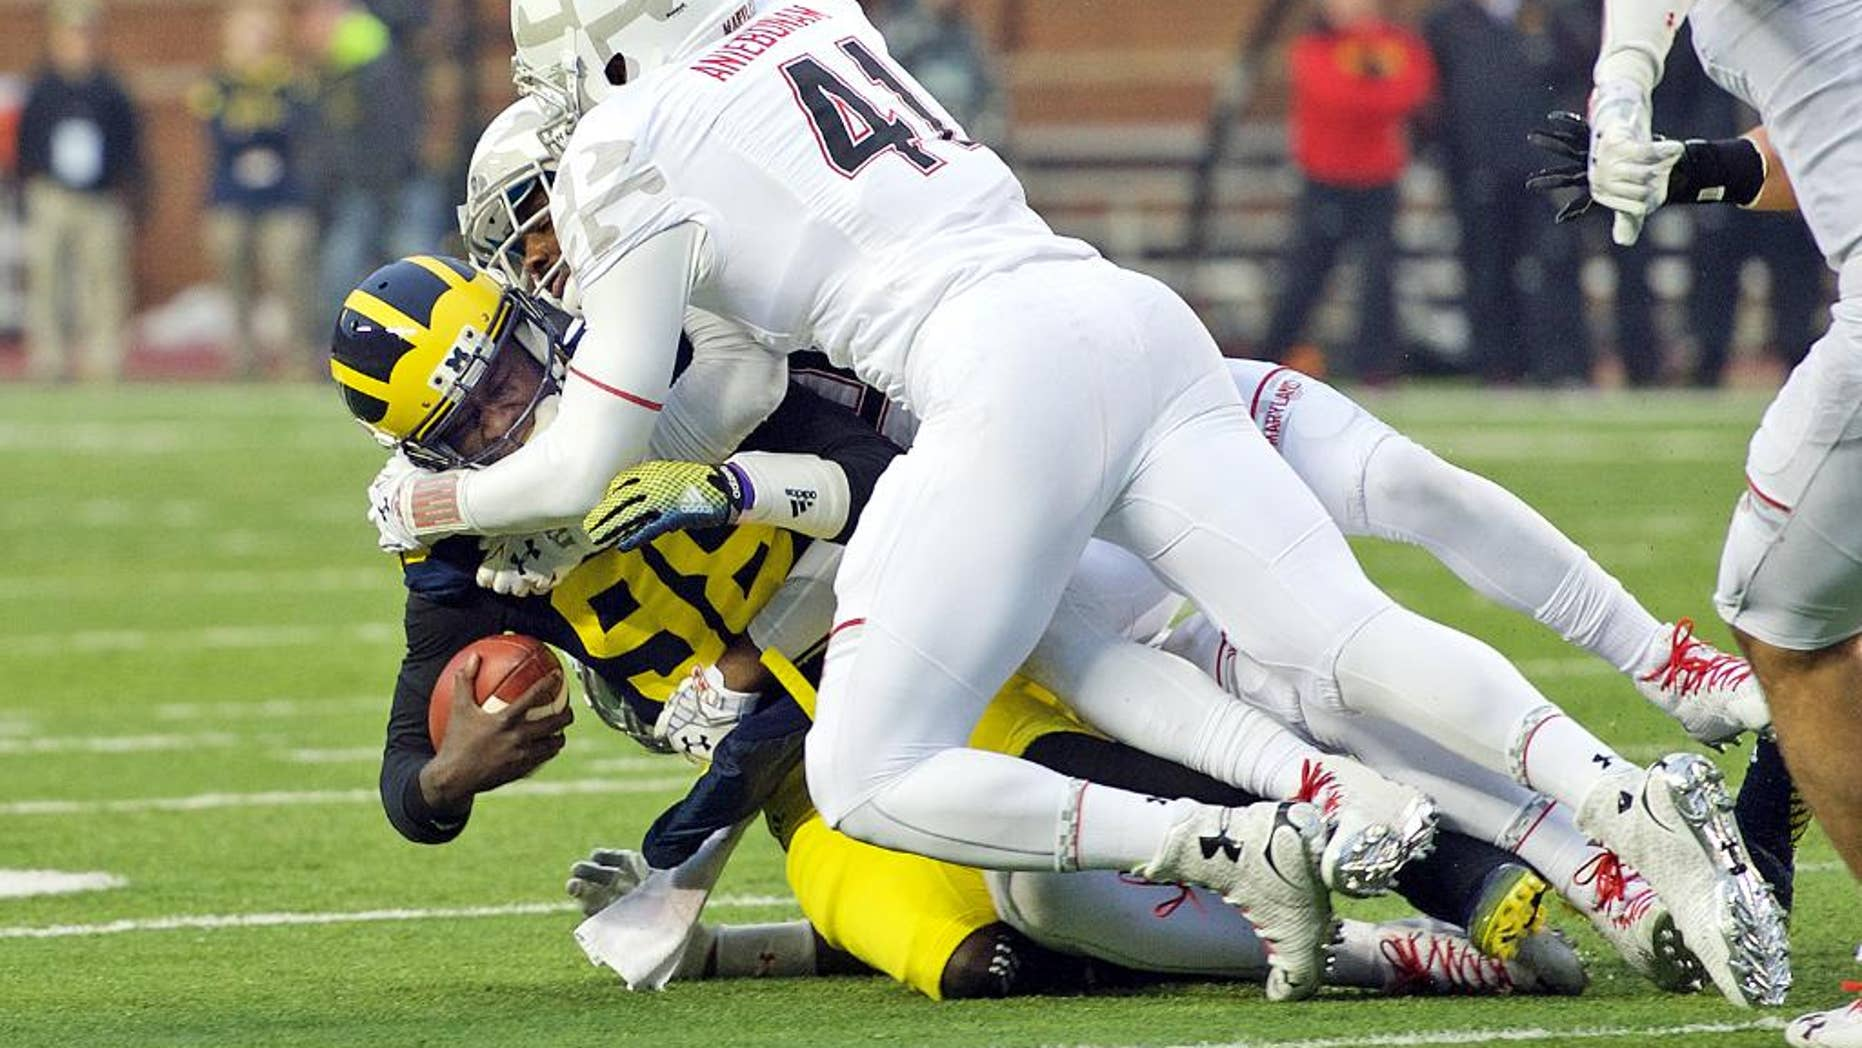 Michigan quarterback Devin Gardner, bottom left, gets sacked by Maryland linebackers Yannick Ngakoue, back, and Jesse Aniebonam (41), in the second quarter of an NCAA college football game in Ann Arbor, Mich., Saturday, Nov. 22, 2014. Maryland won 23-16. (AP Photo/Tony Ding)